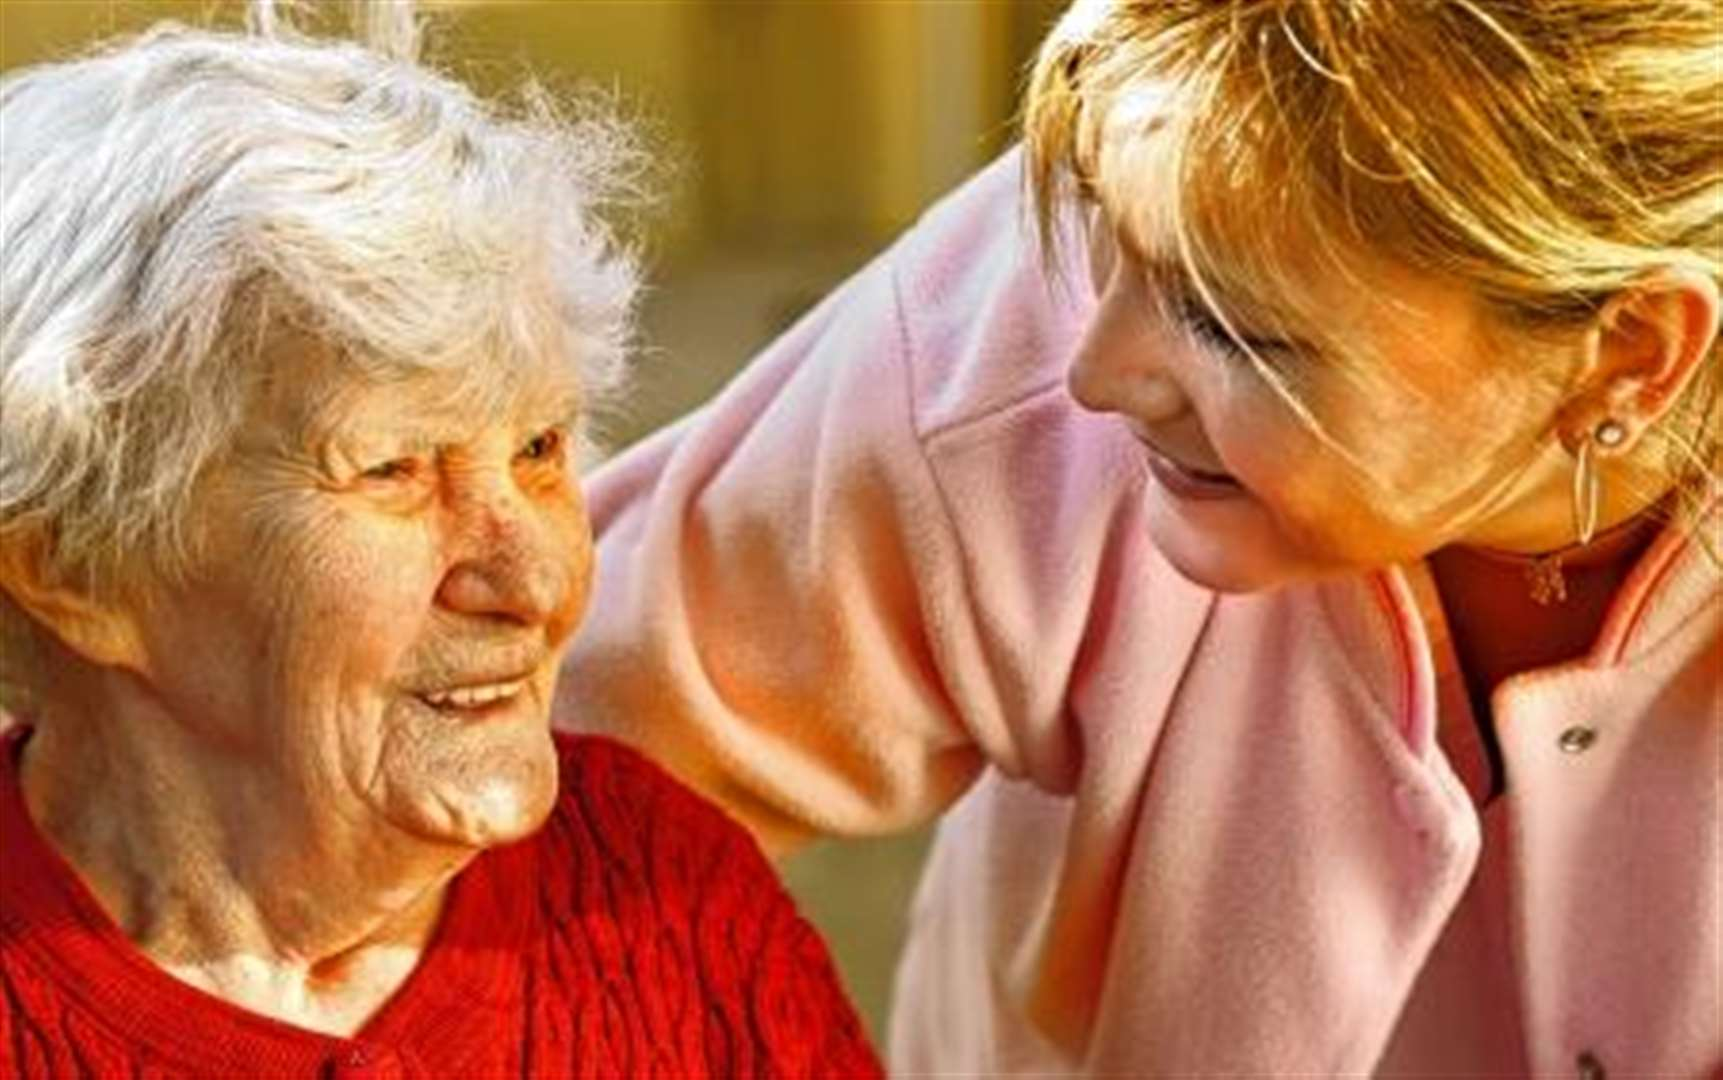 'Payment puts more money in the pockets of carers'